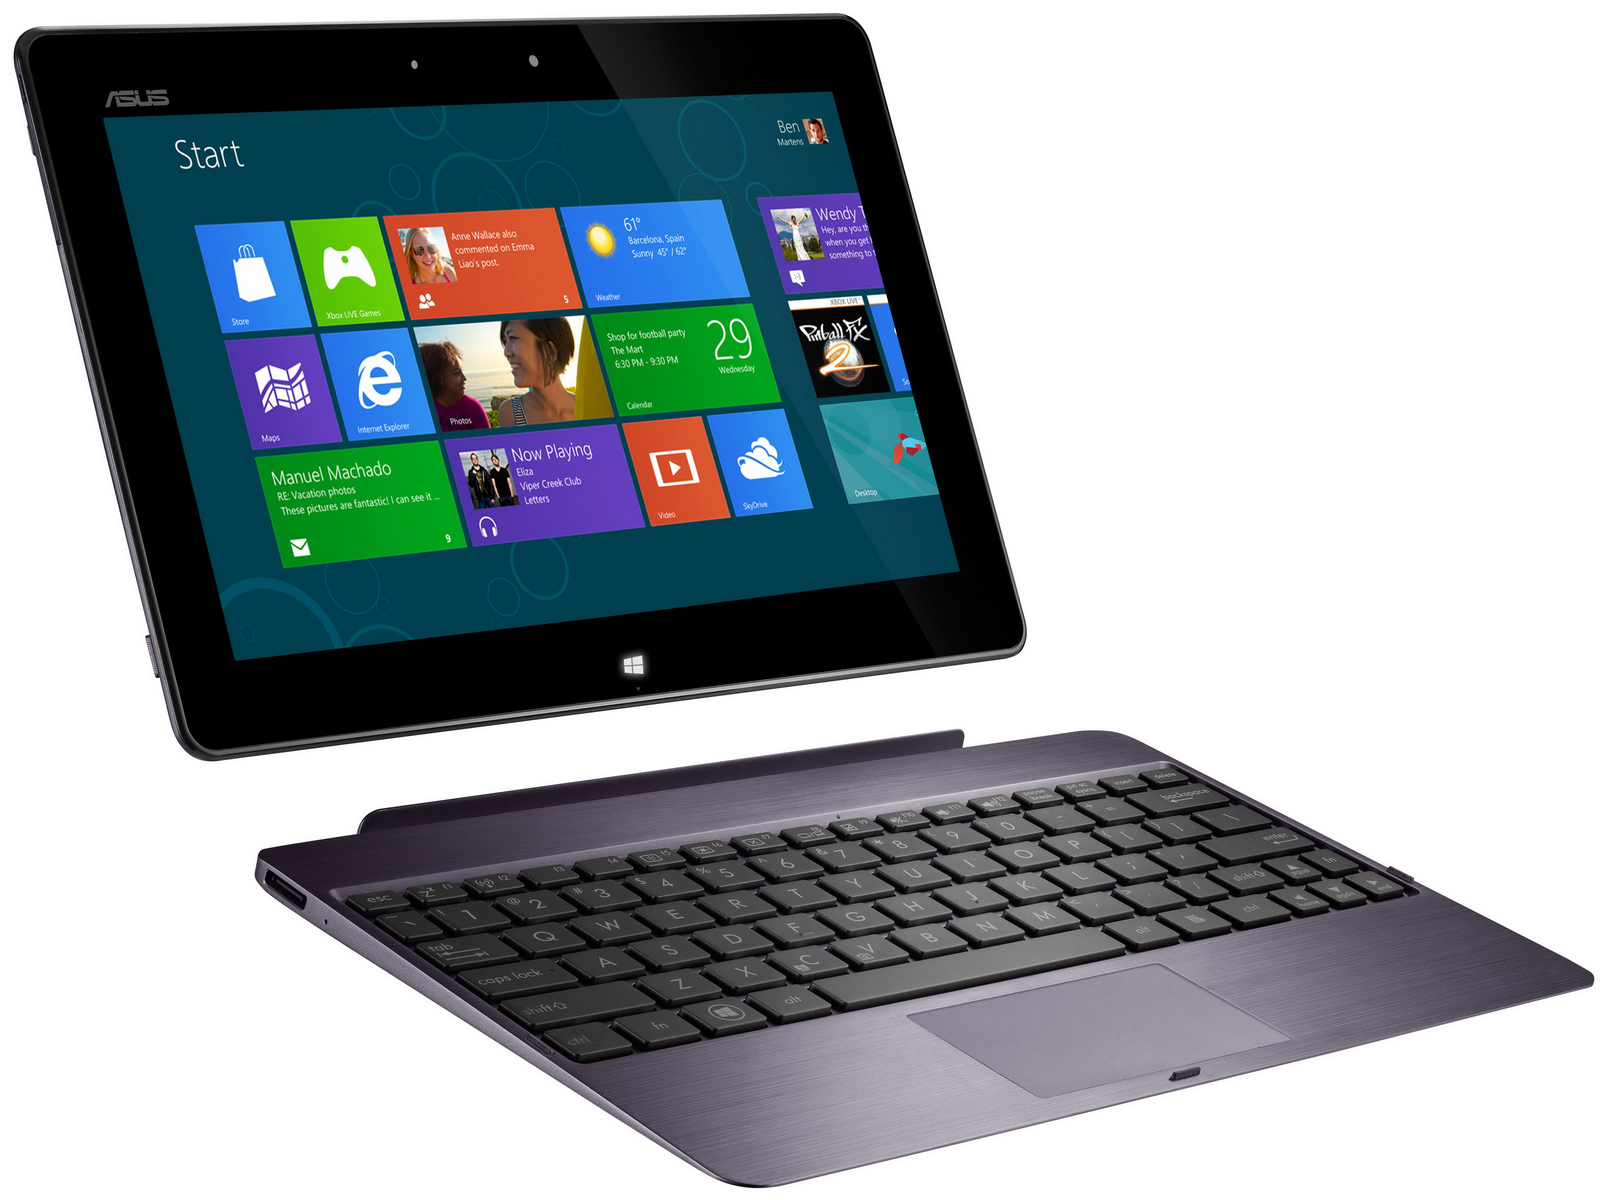 Laptop Tablett Windows 8 Tablets Asus 600 Und Asus 810 Im Detail